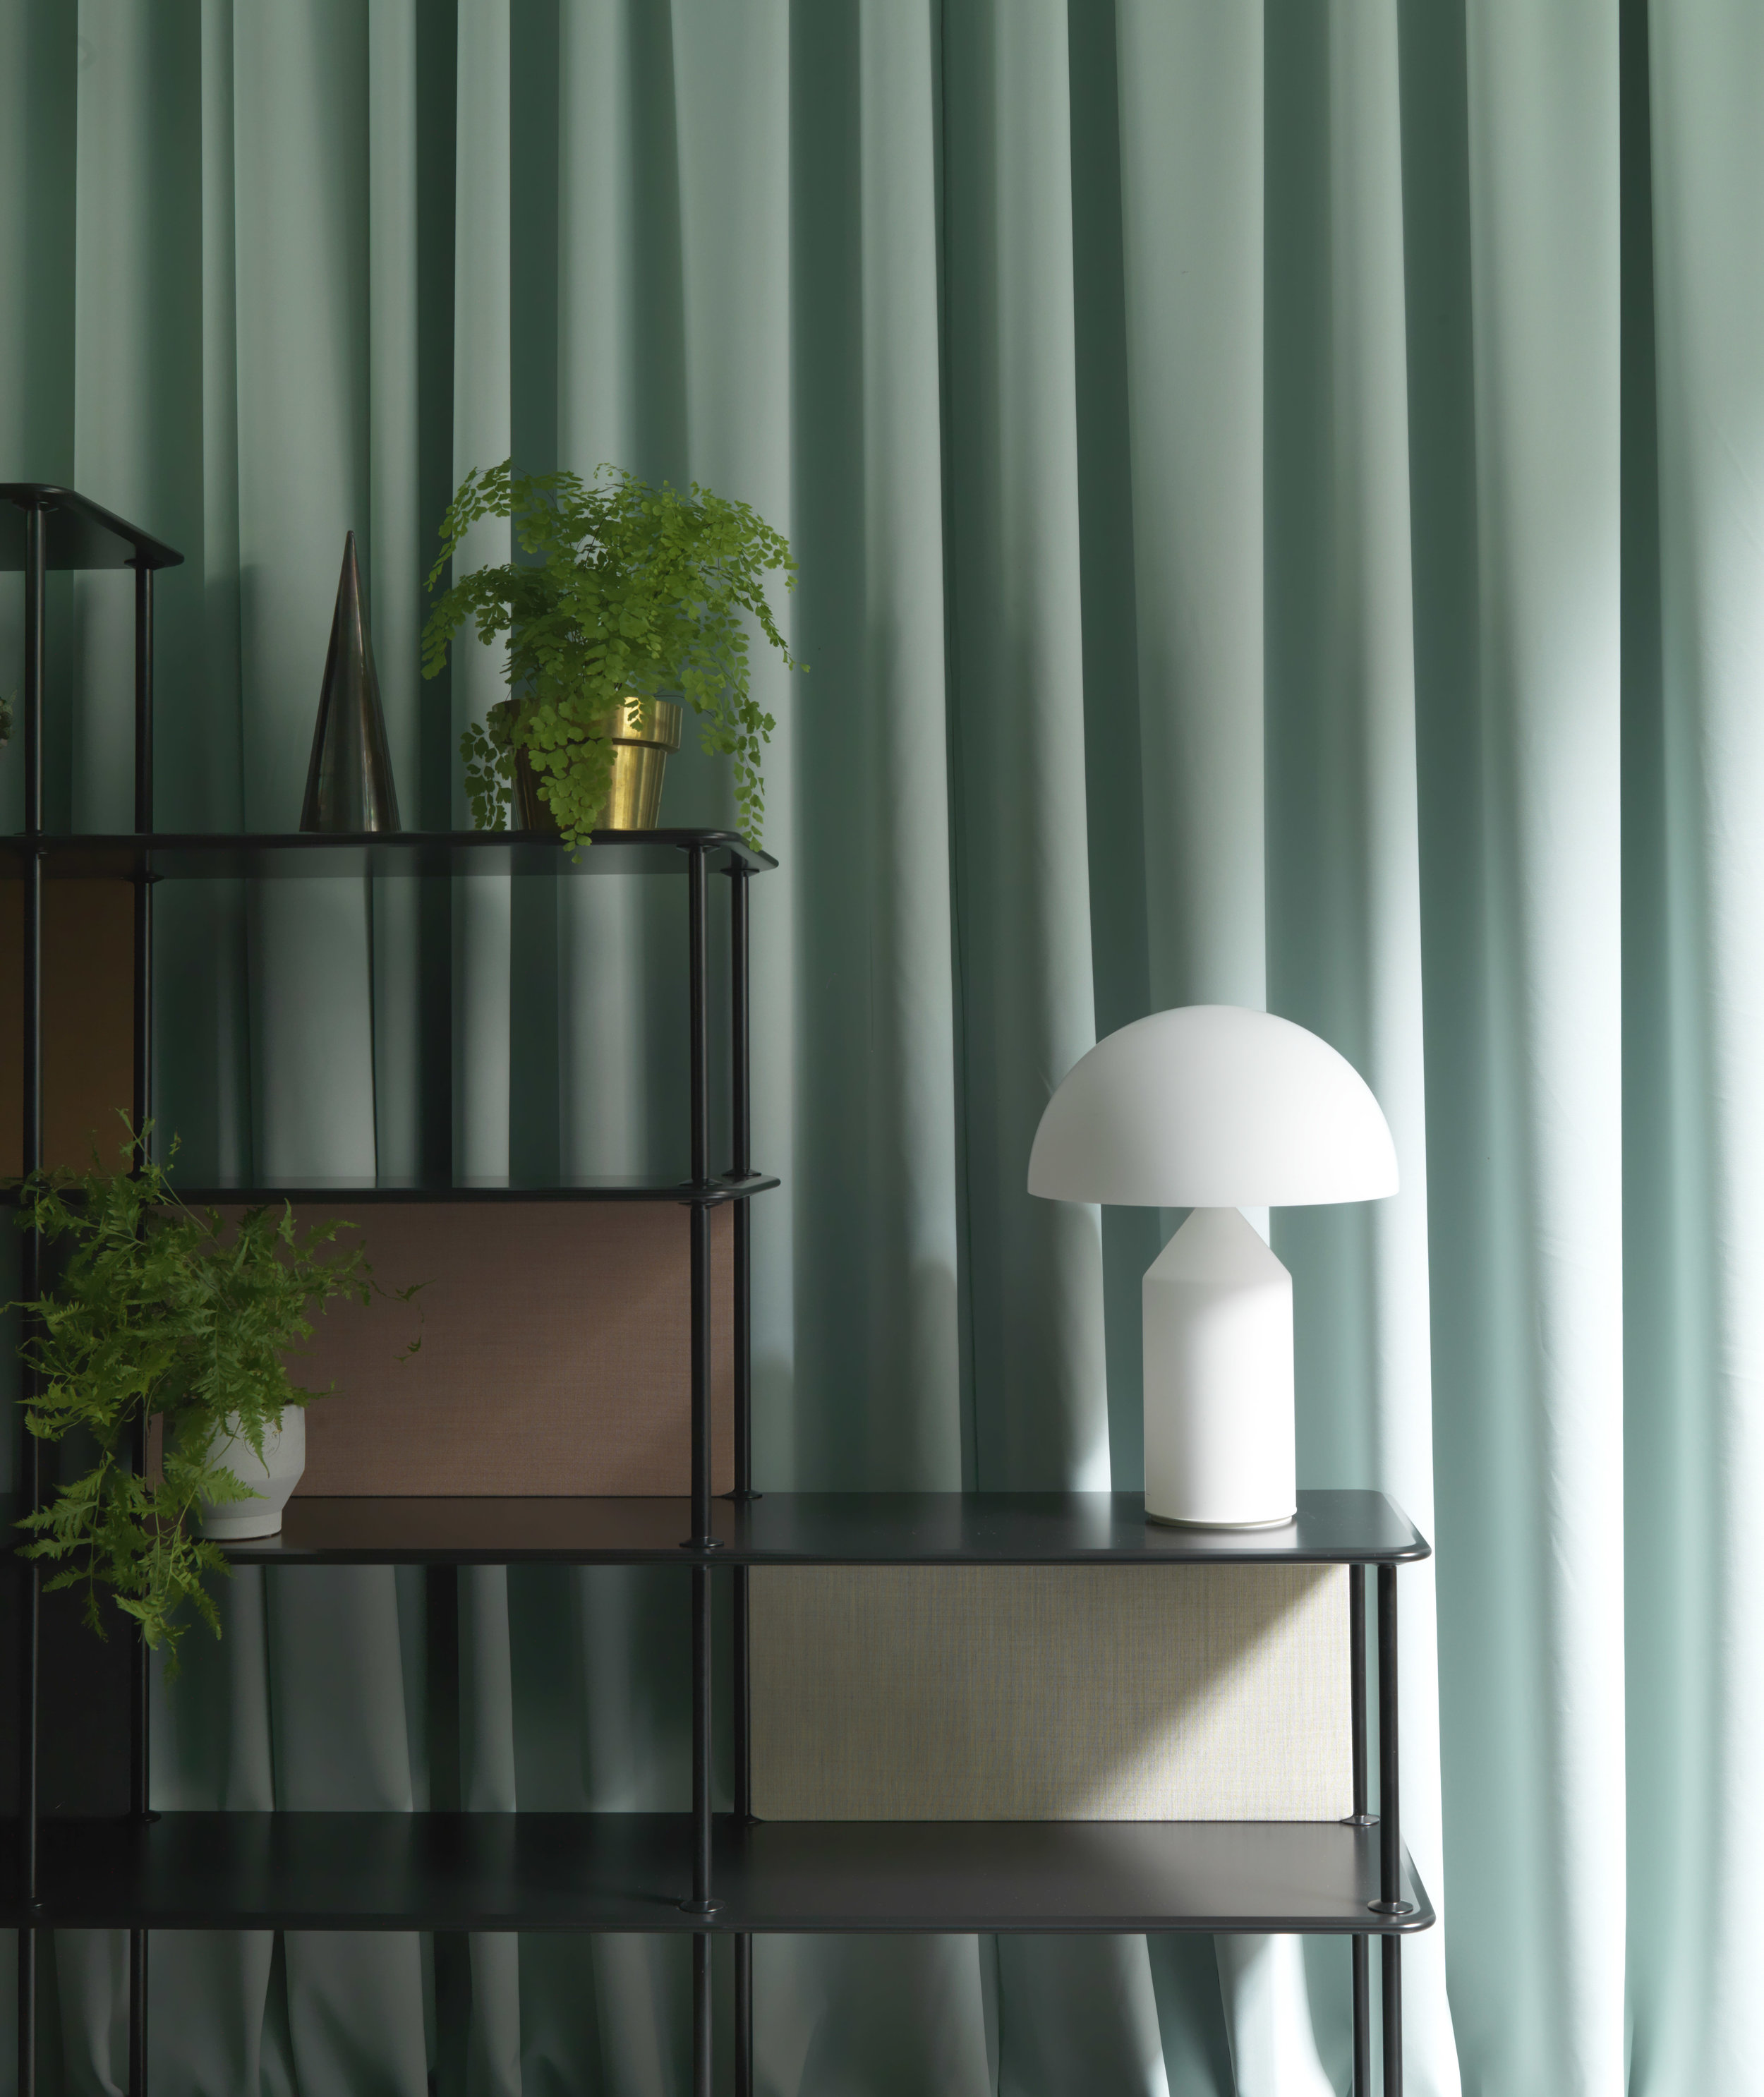 Montana Free - their newest product! customisable, minimalistic shelving system and must we say: beautiful?